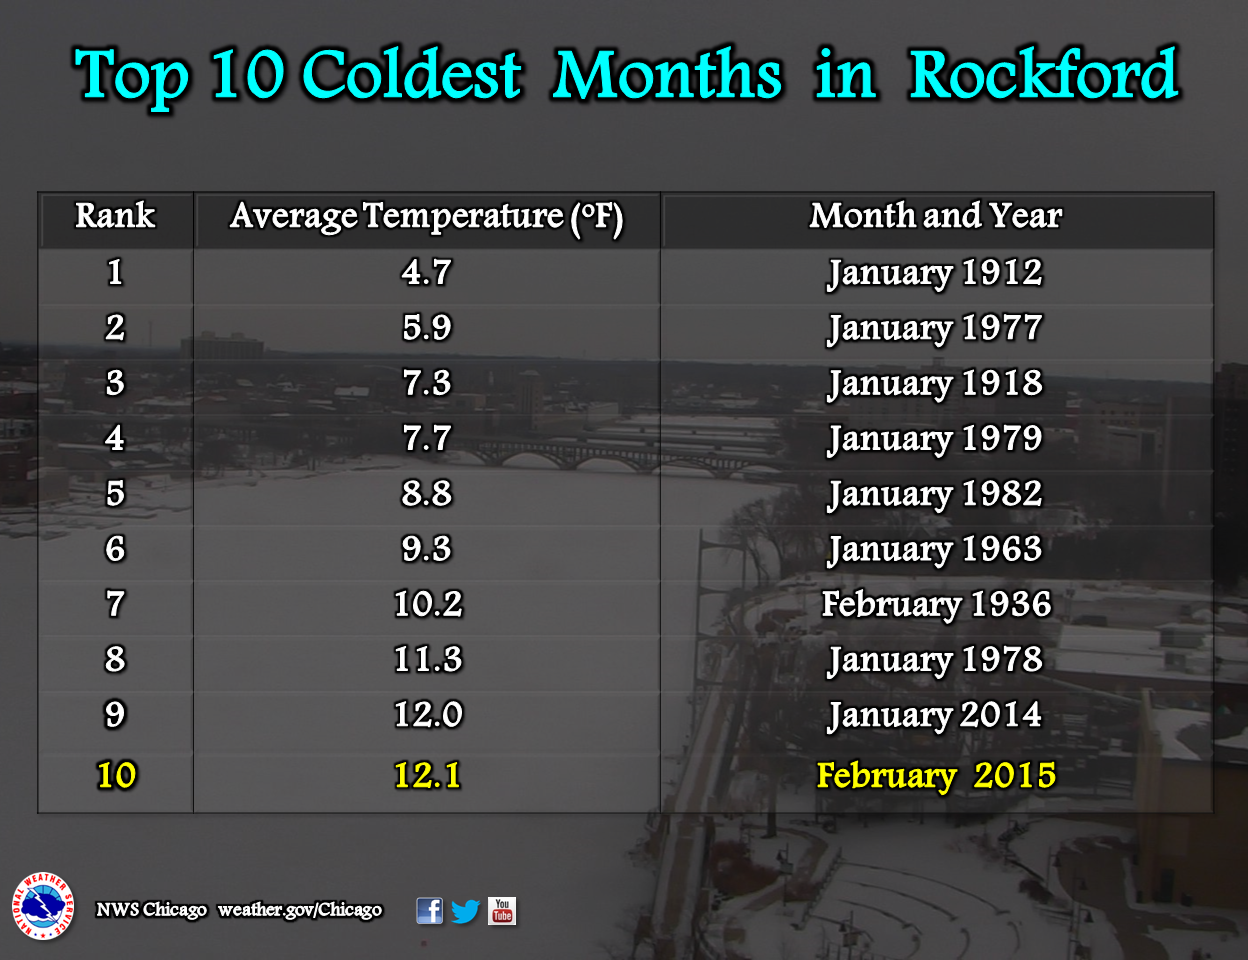 Top 10 Coldest Months on Record in Rockford